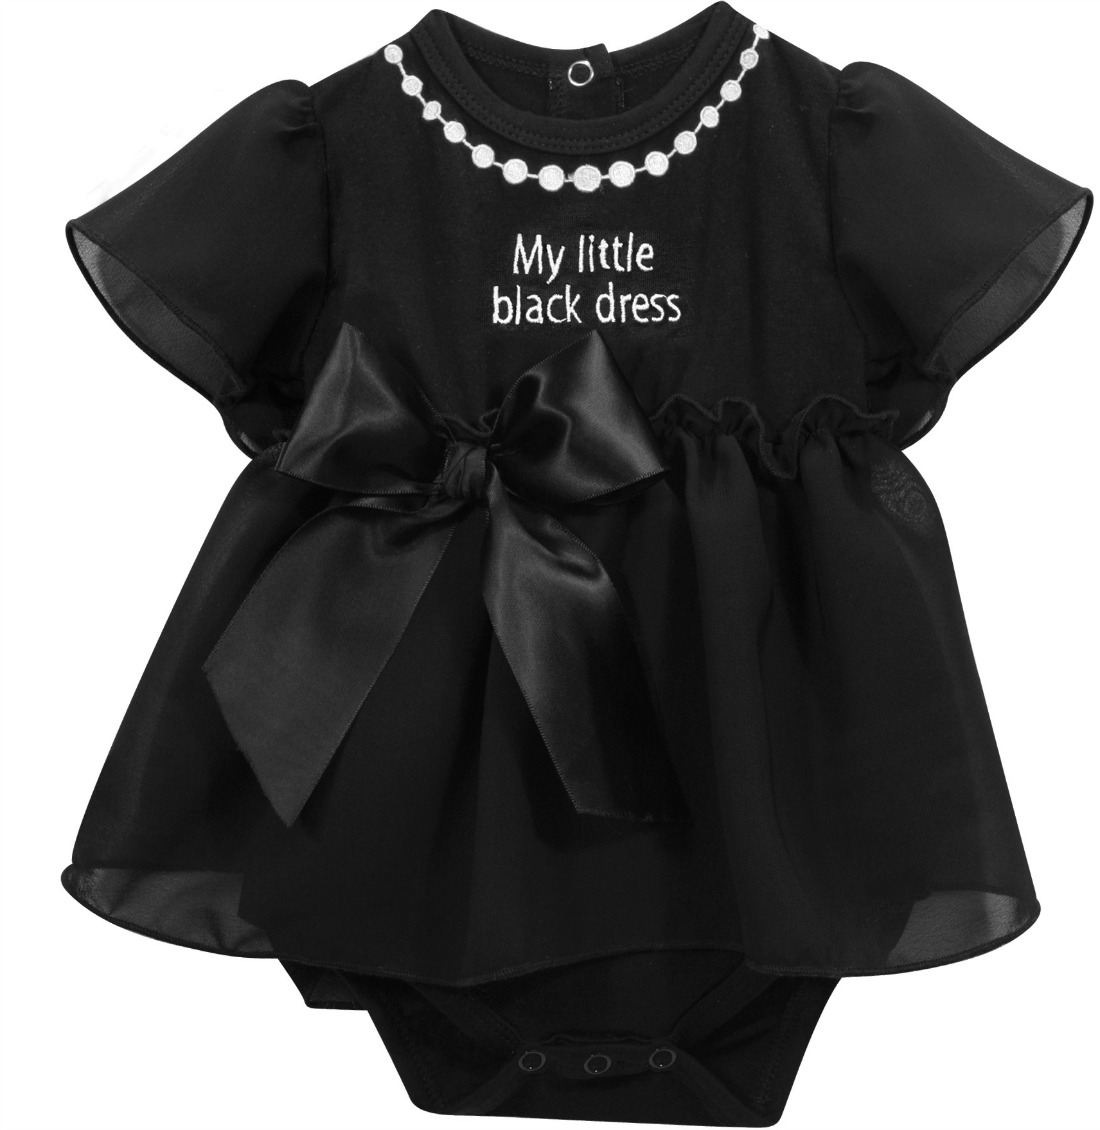 Black dress for baby girl - Baby Girls Little Black Dress Snapdress Sold Out